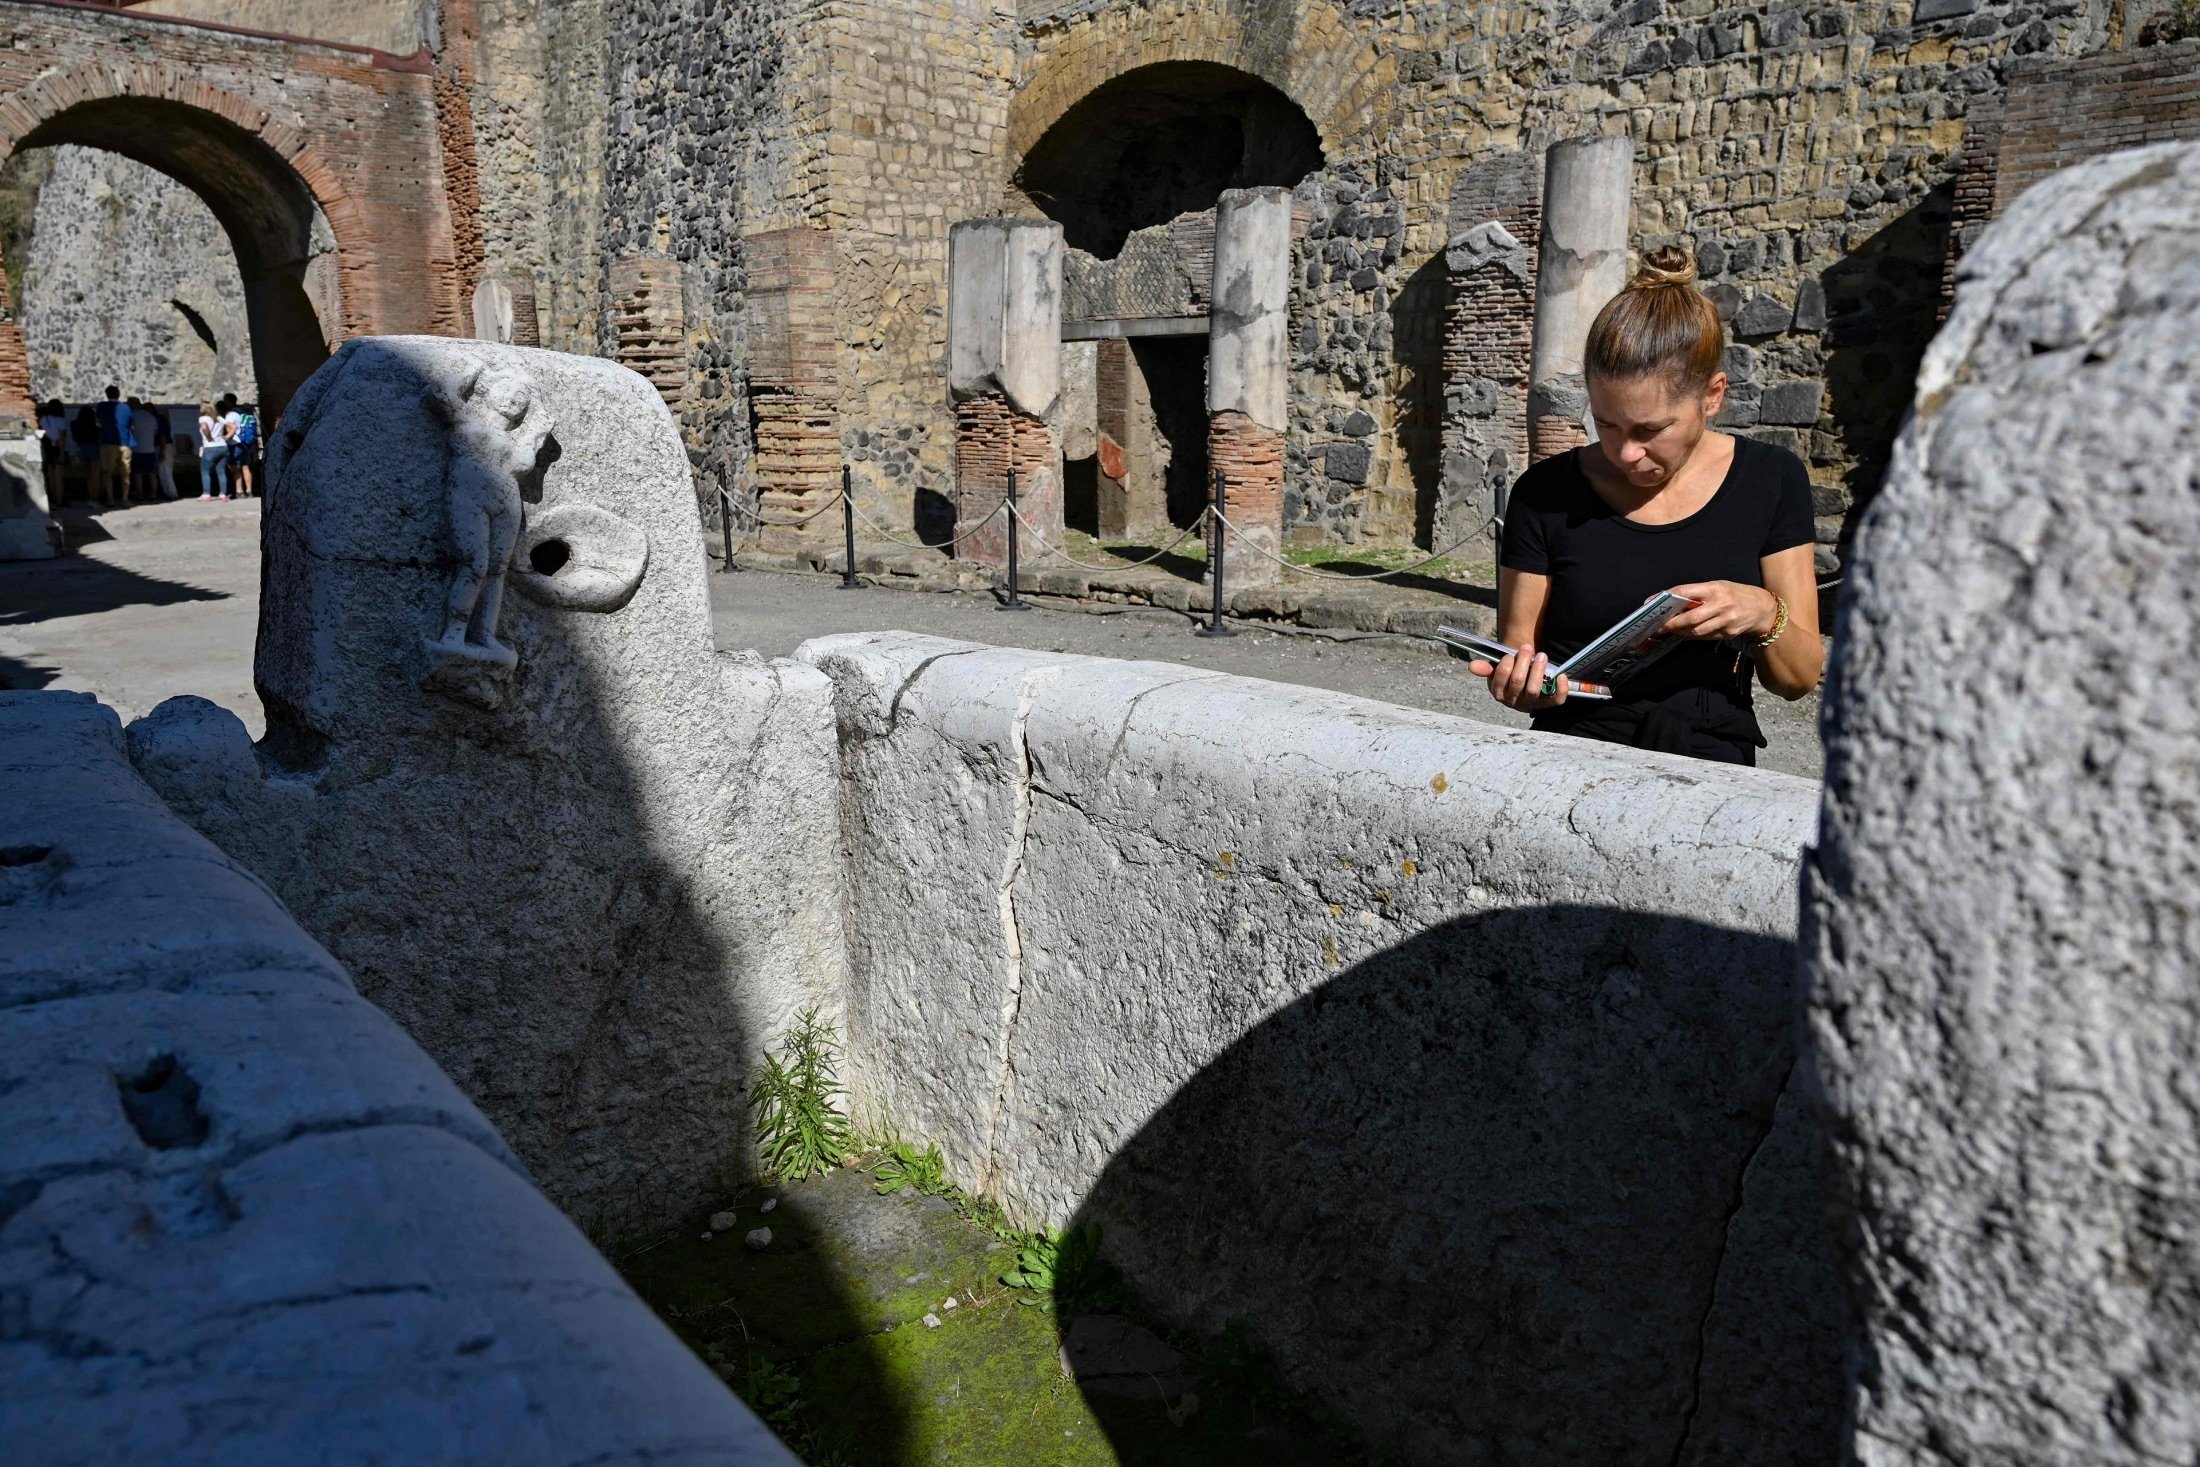 A visitor walks through the archaeological site of Herculaneum in Ercolano, near Naples, Italy, Oct. 23, 2019. (AFP Photo)